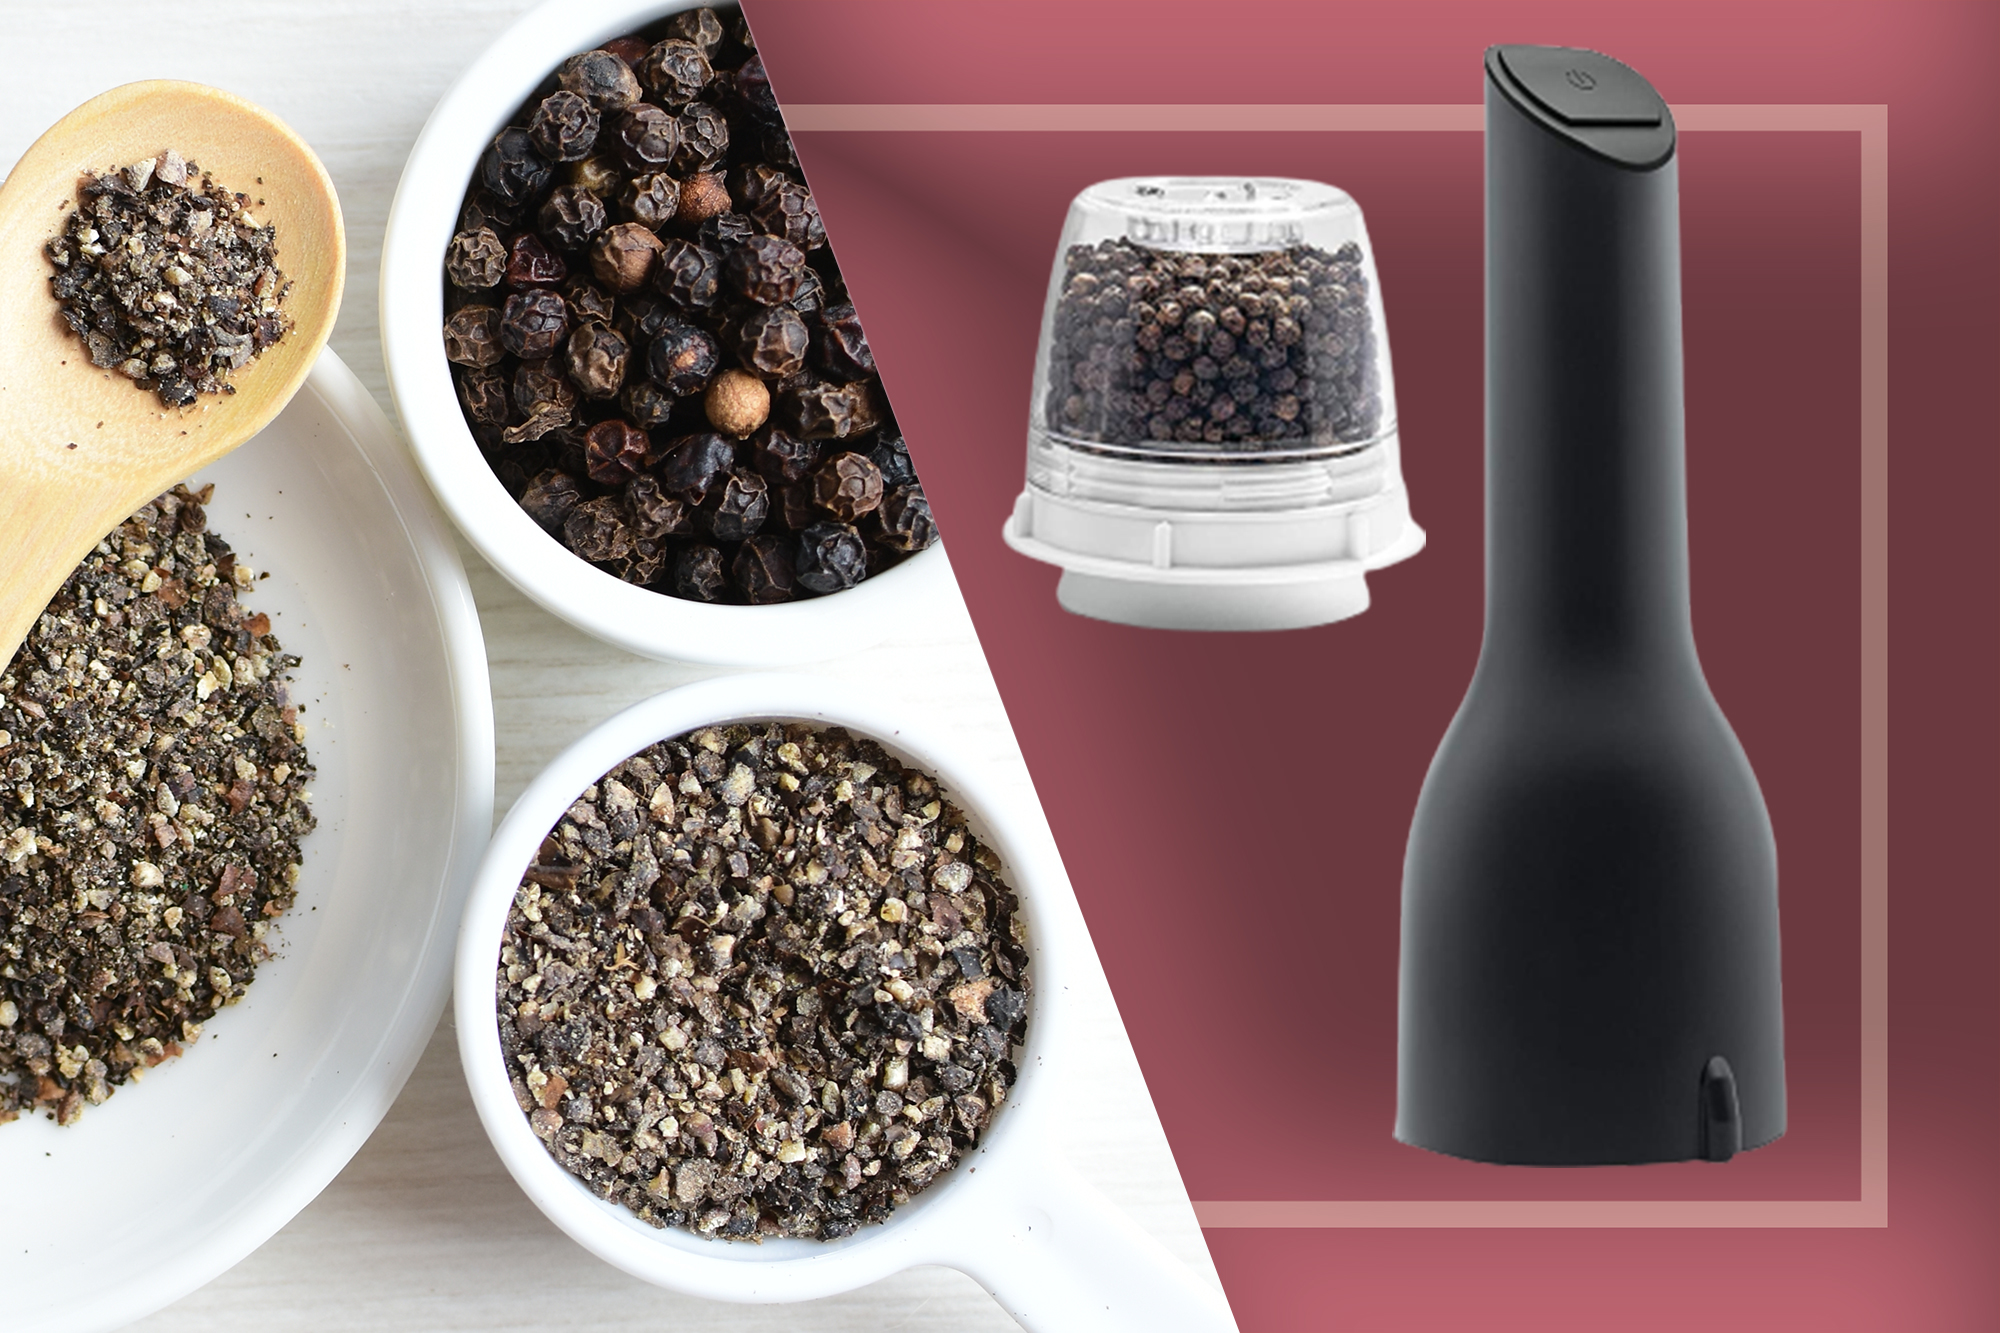 Ground and whole peppercorns